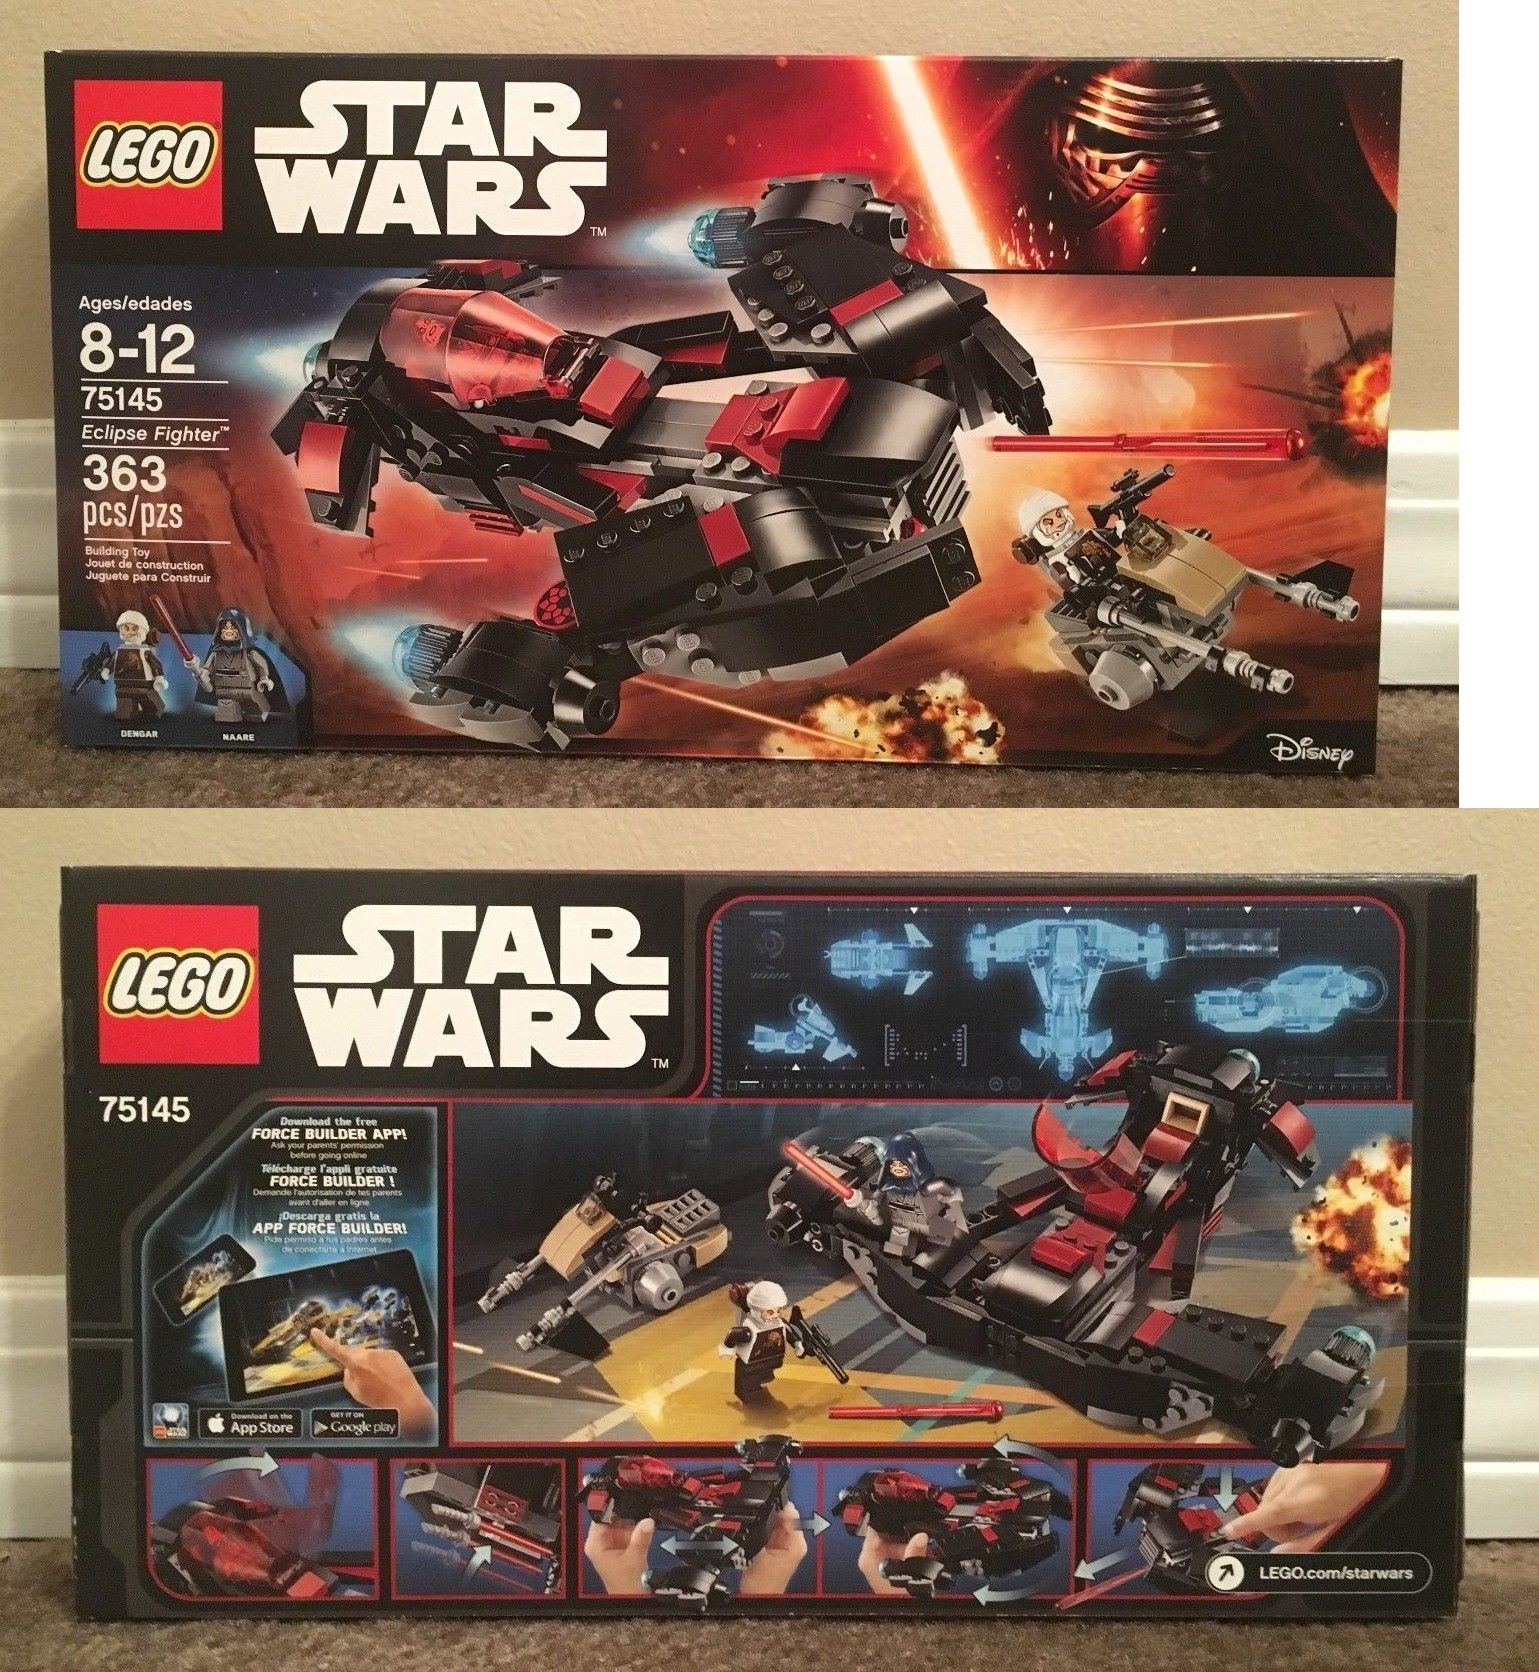 Building Toys 183446 Lego Star Wars Eclipse Fighter 75145 Brand